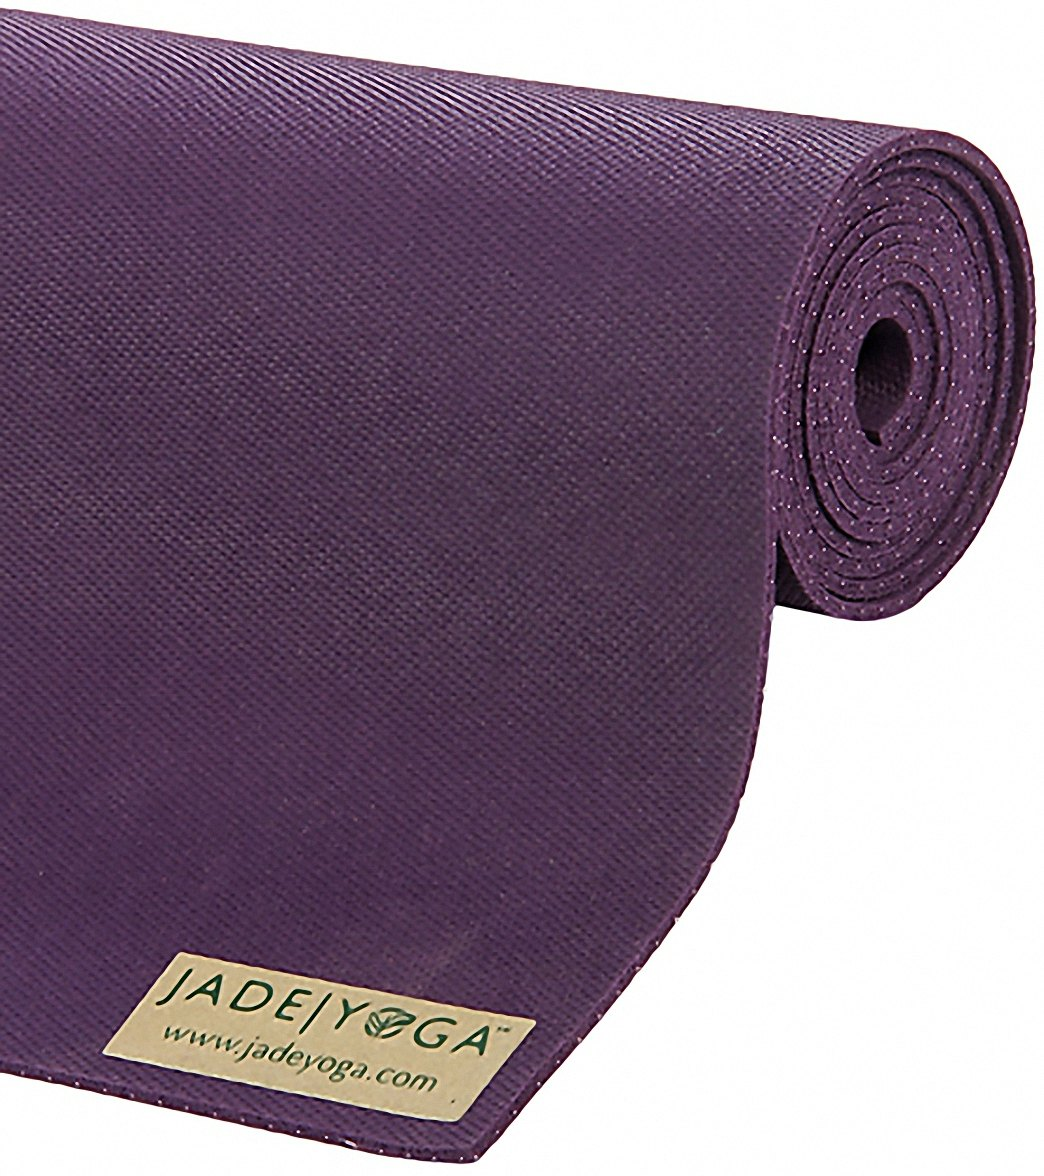 a line yoga purple wear mat product premium mats position